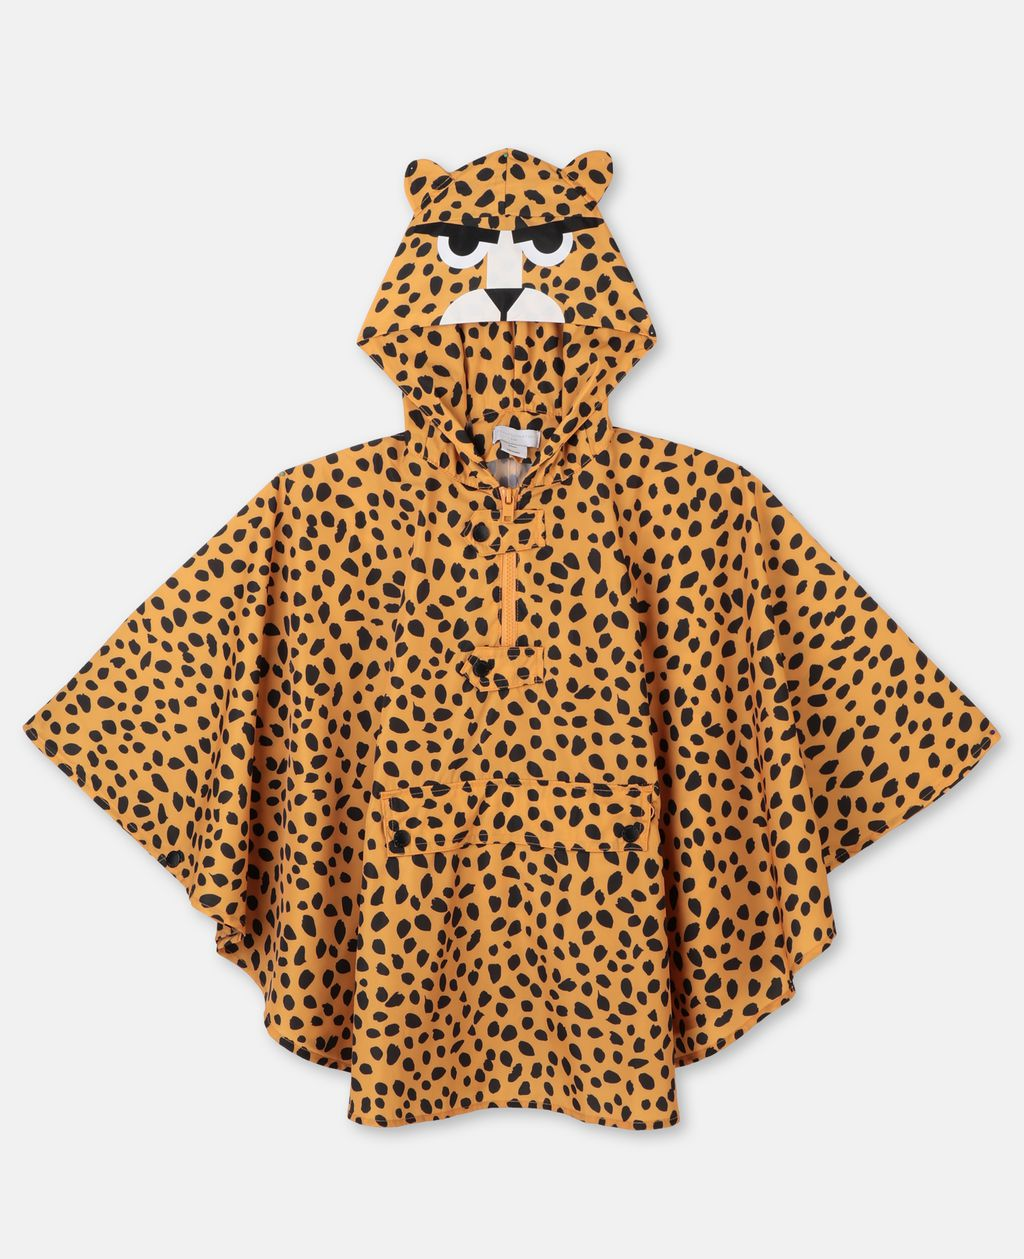 Stella McCartney Goes Animal Crackers With Her Most Sustainable Kids Collection Yet